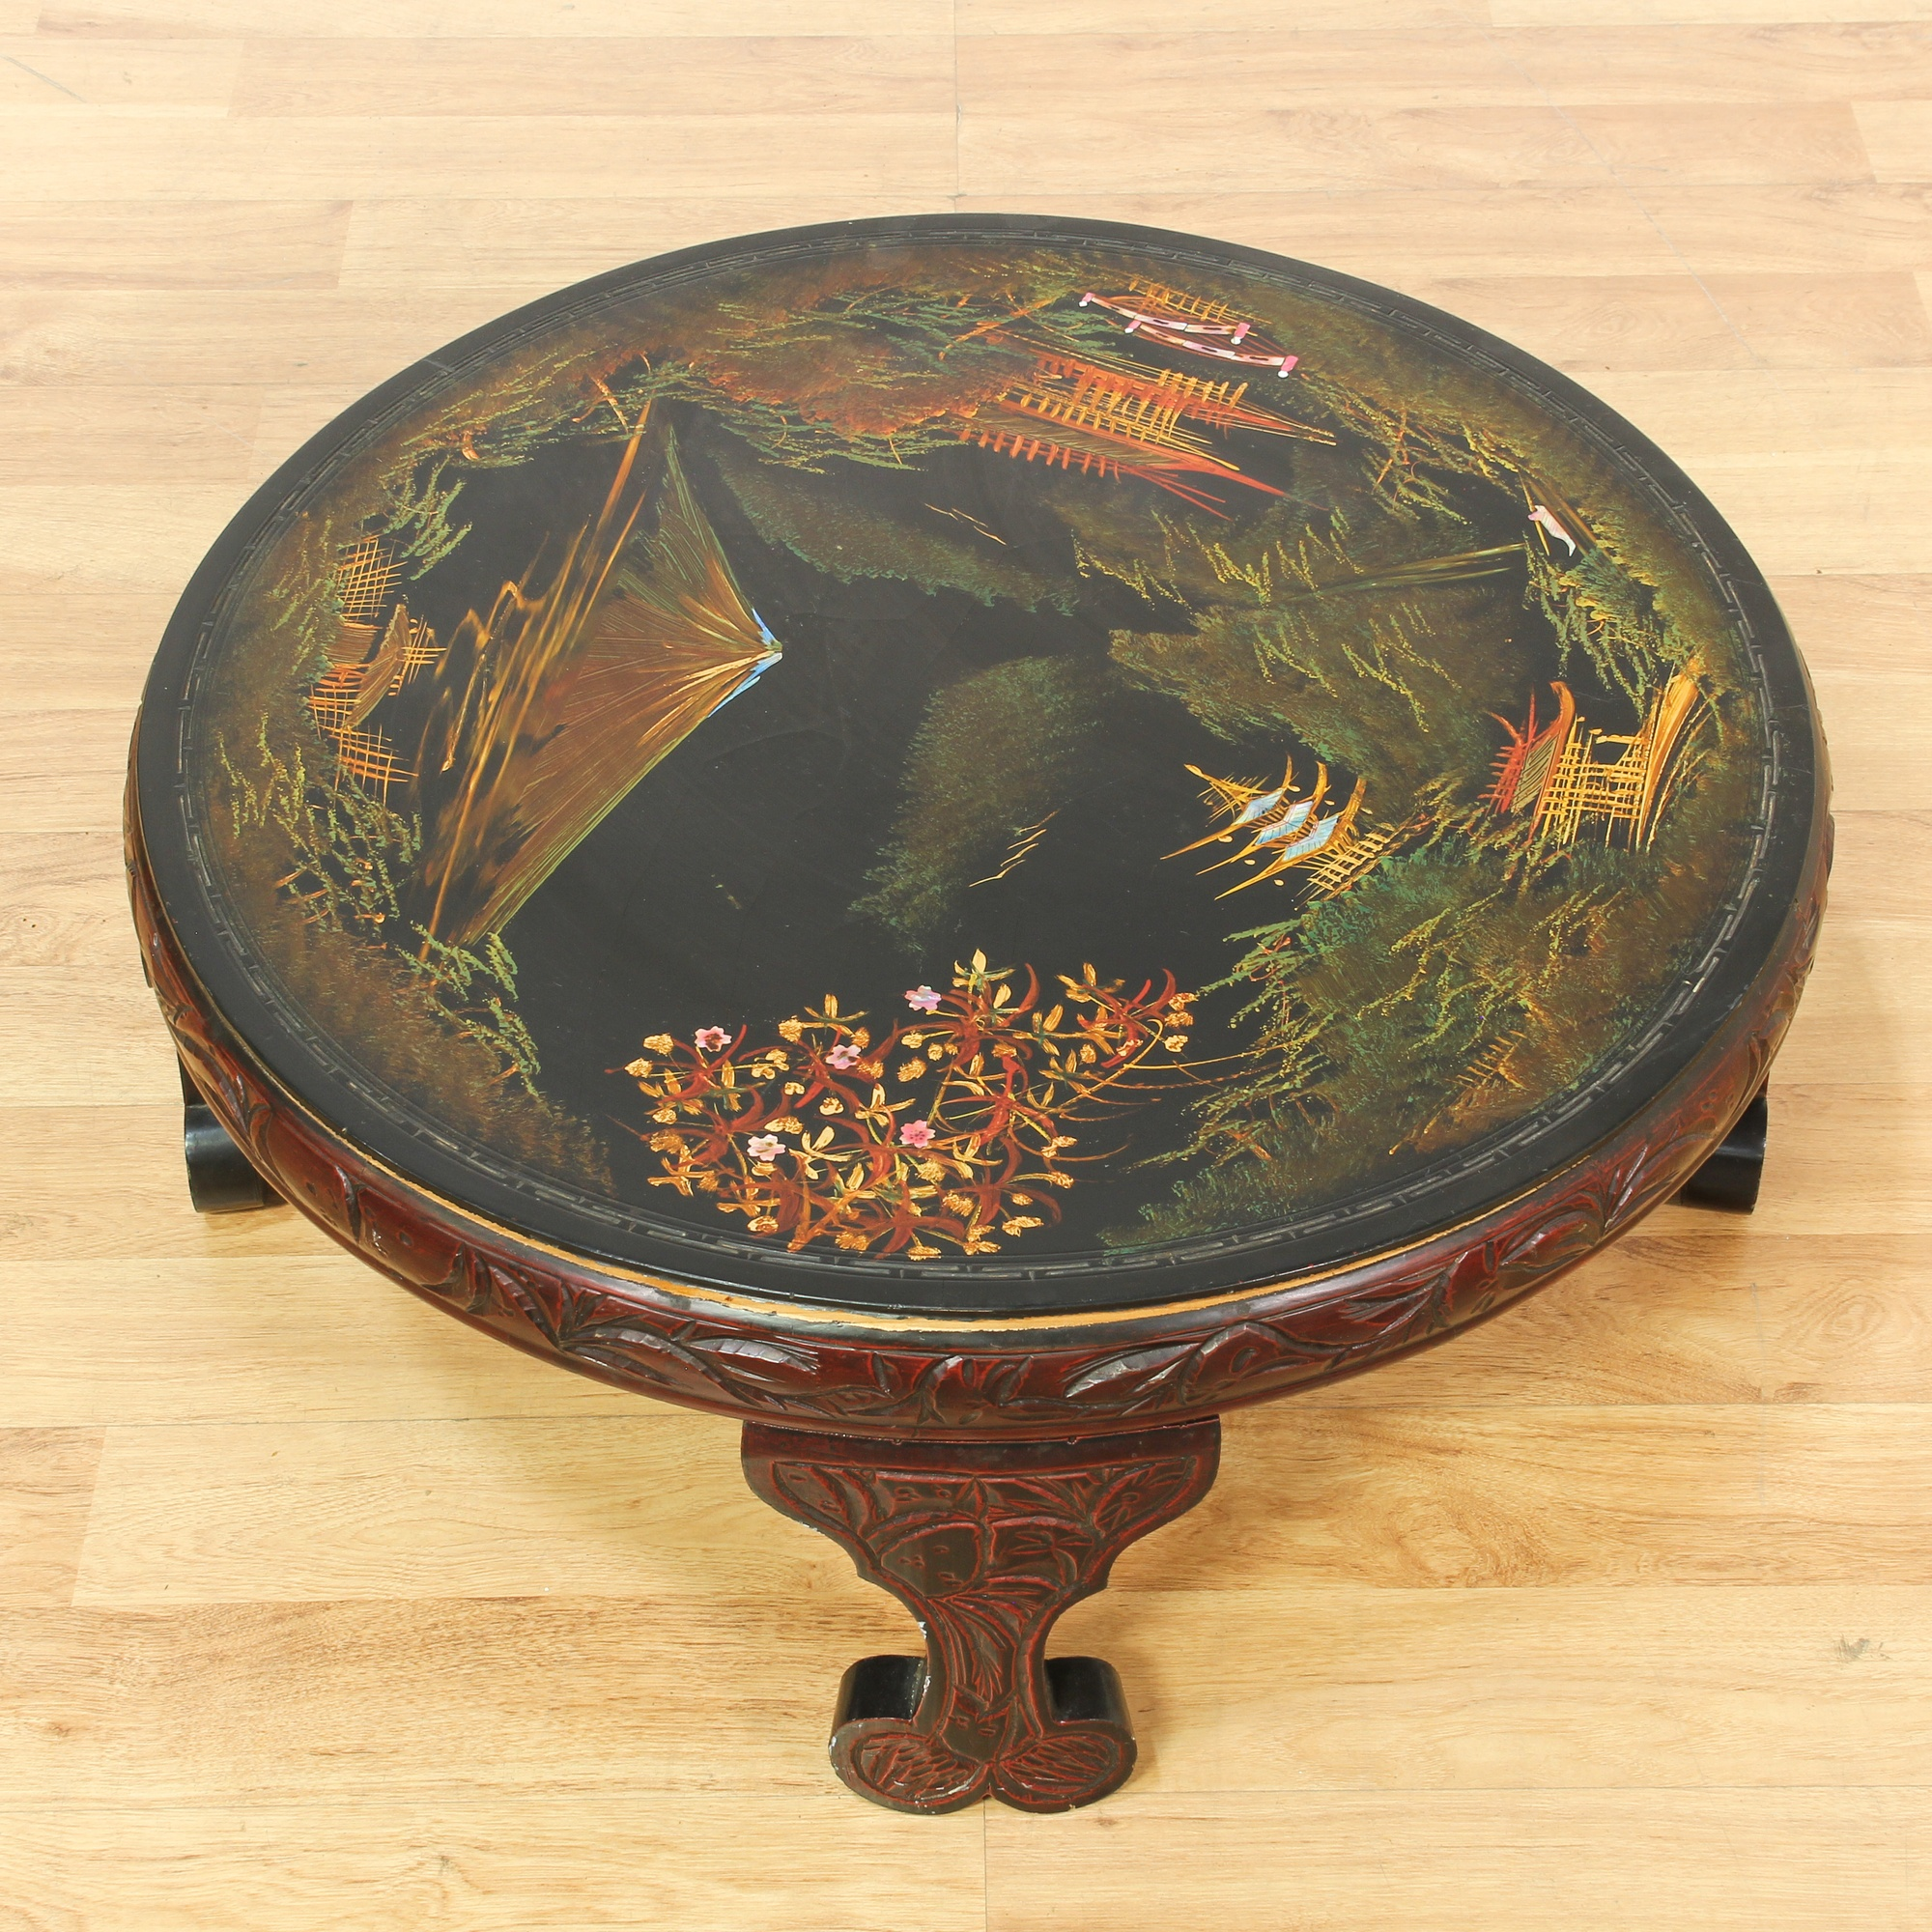 Carved Round Coffee Table Rascalartsnyc: Asian Round Carved Coffee Table